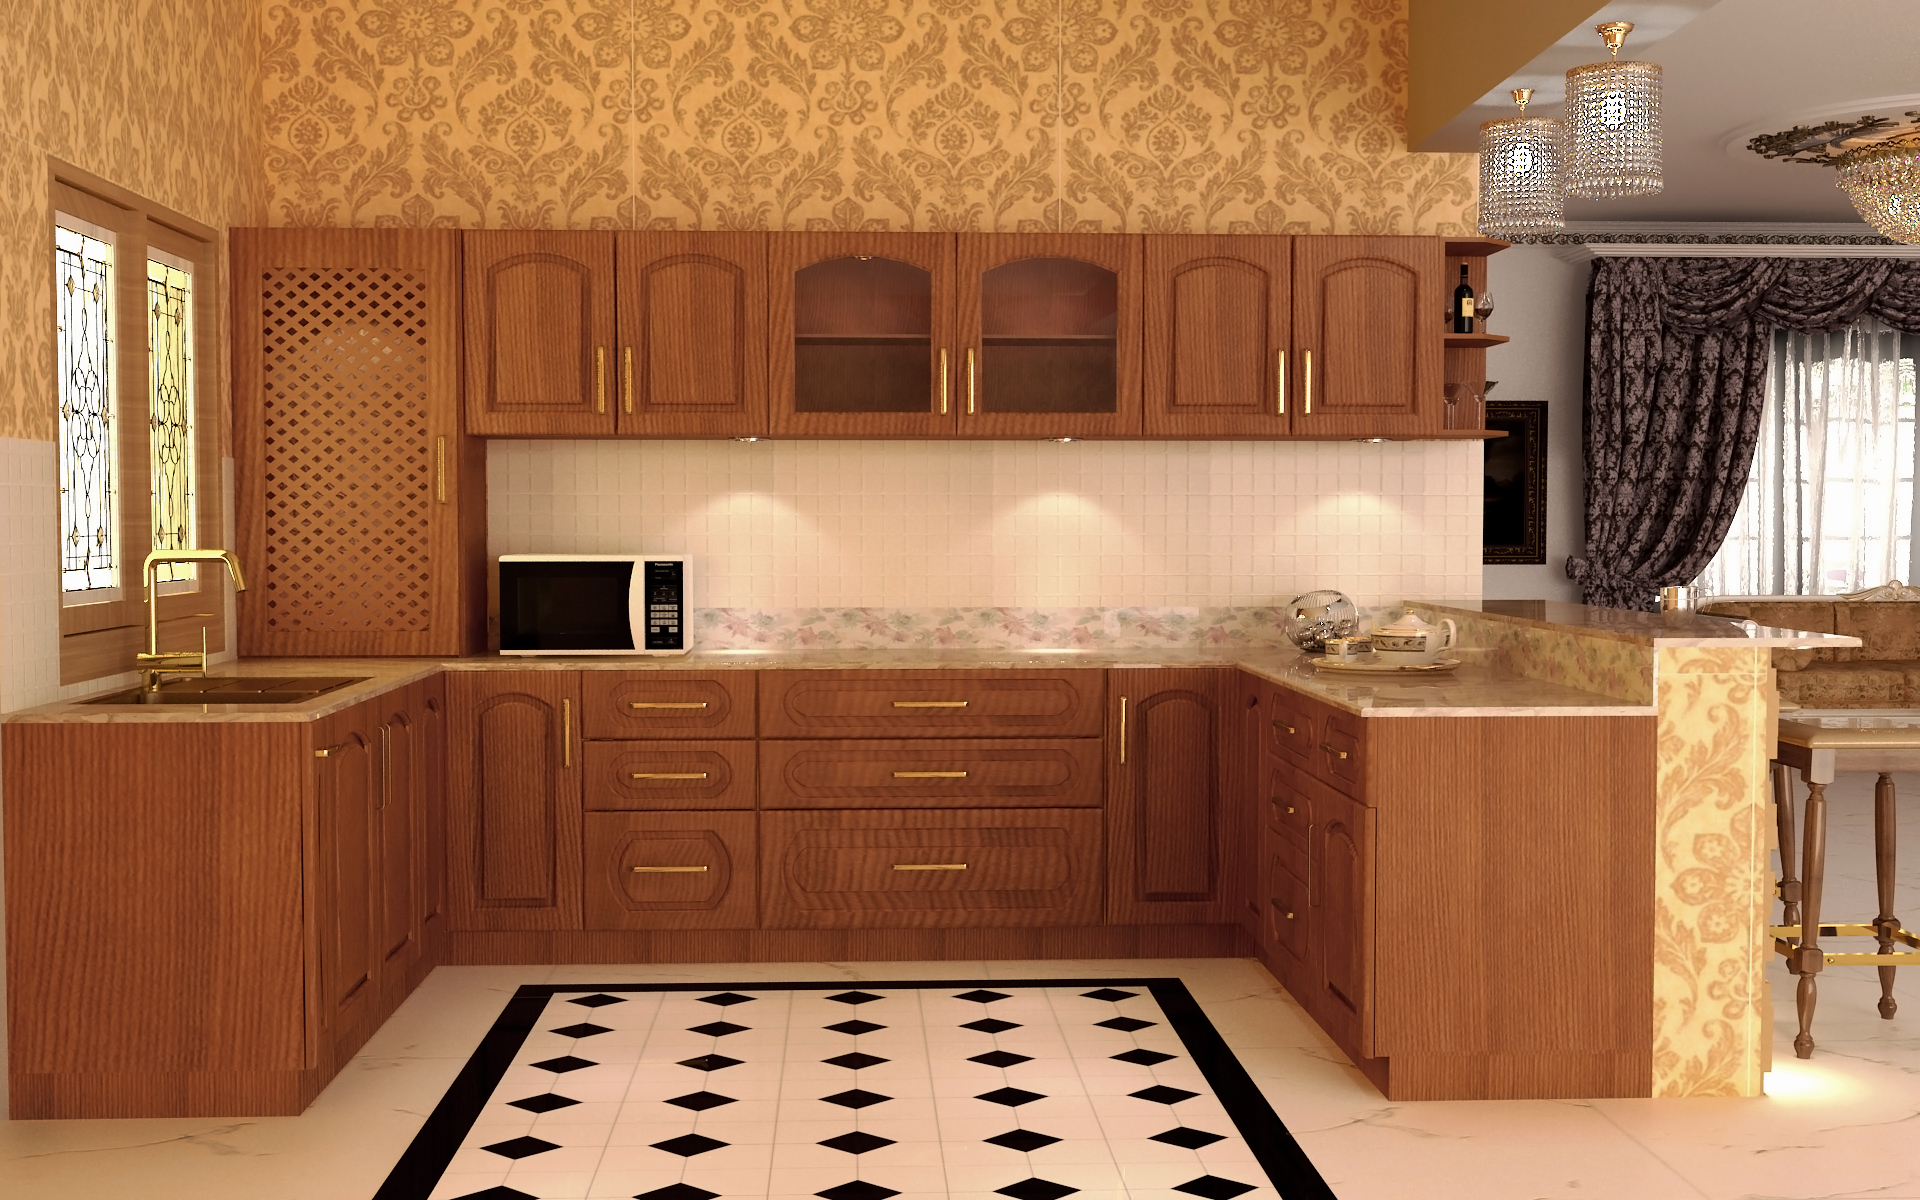 Designs Of Modular Kitchen Design Tips The Traditional Kitchen Homelane